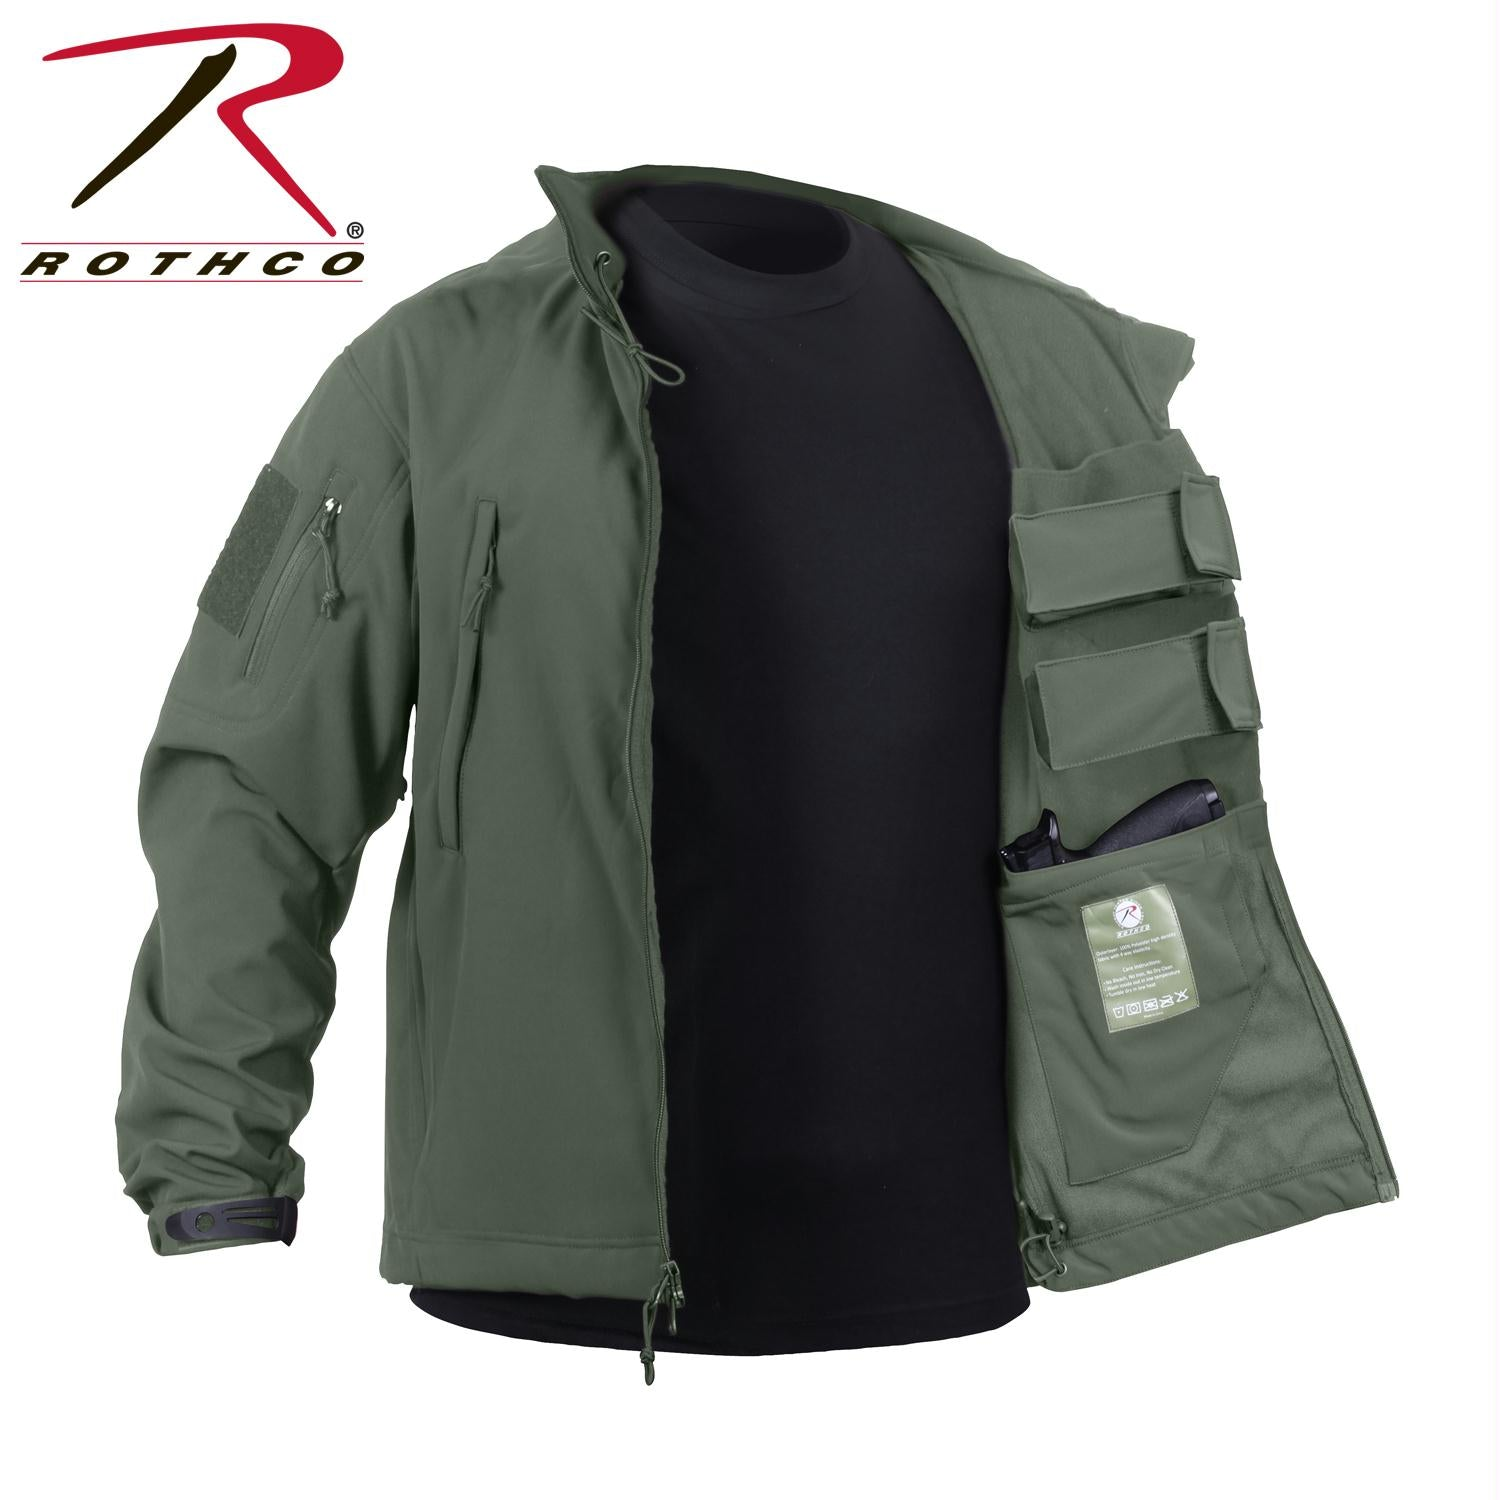 Rothco Concealed Carry Soft Shell Jacket - Olive Drab / XL